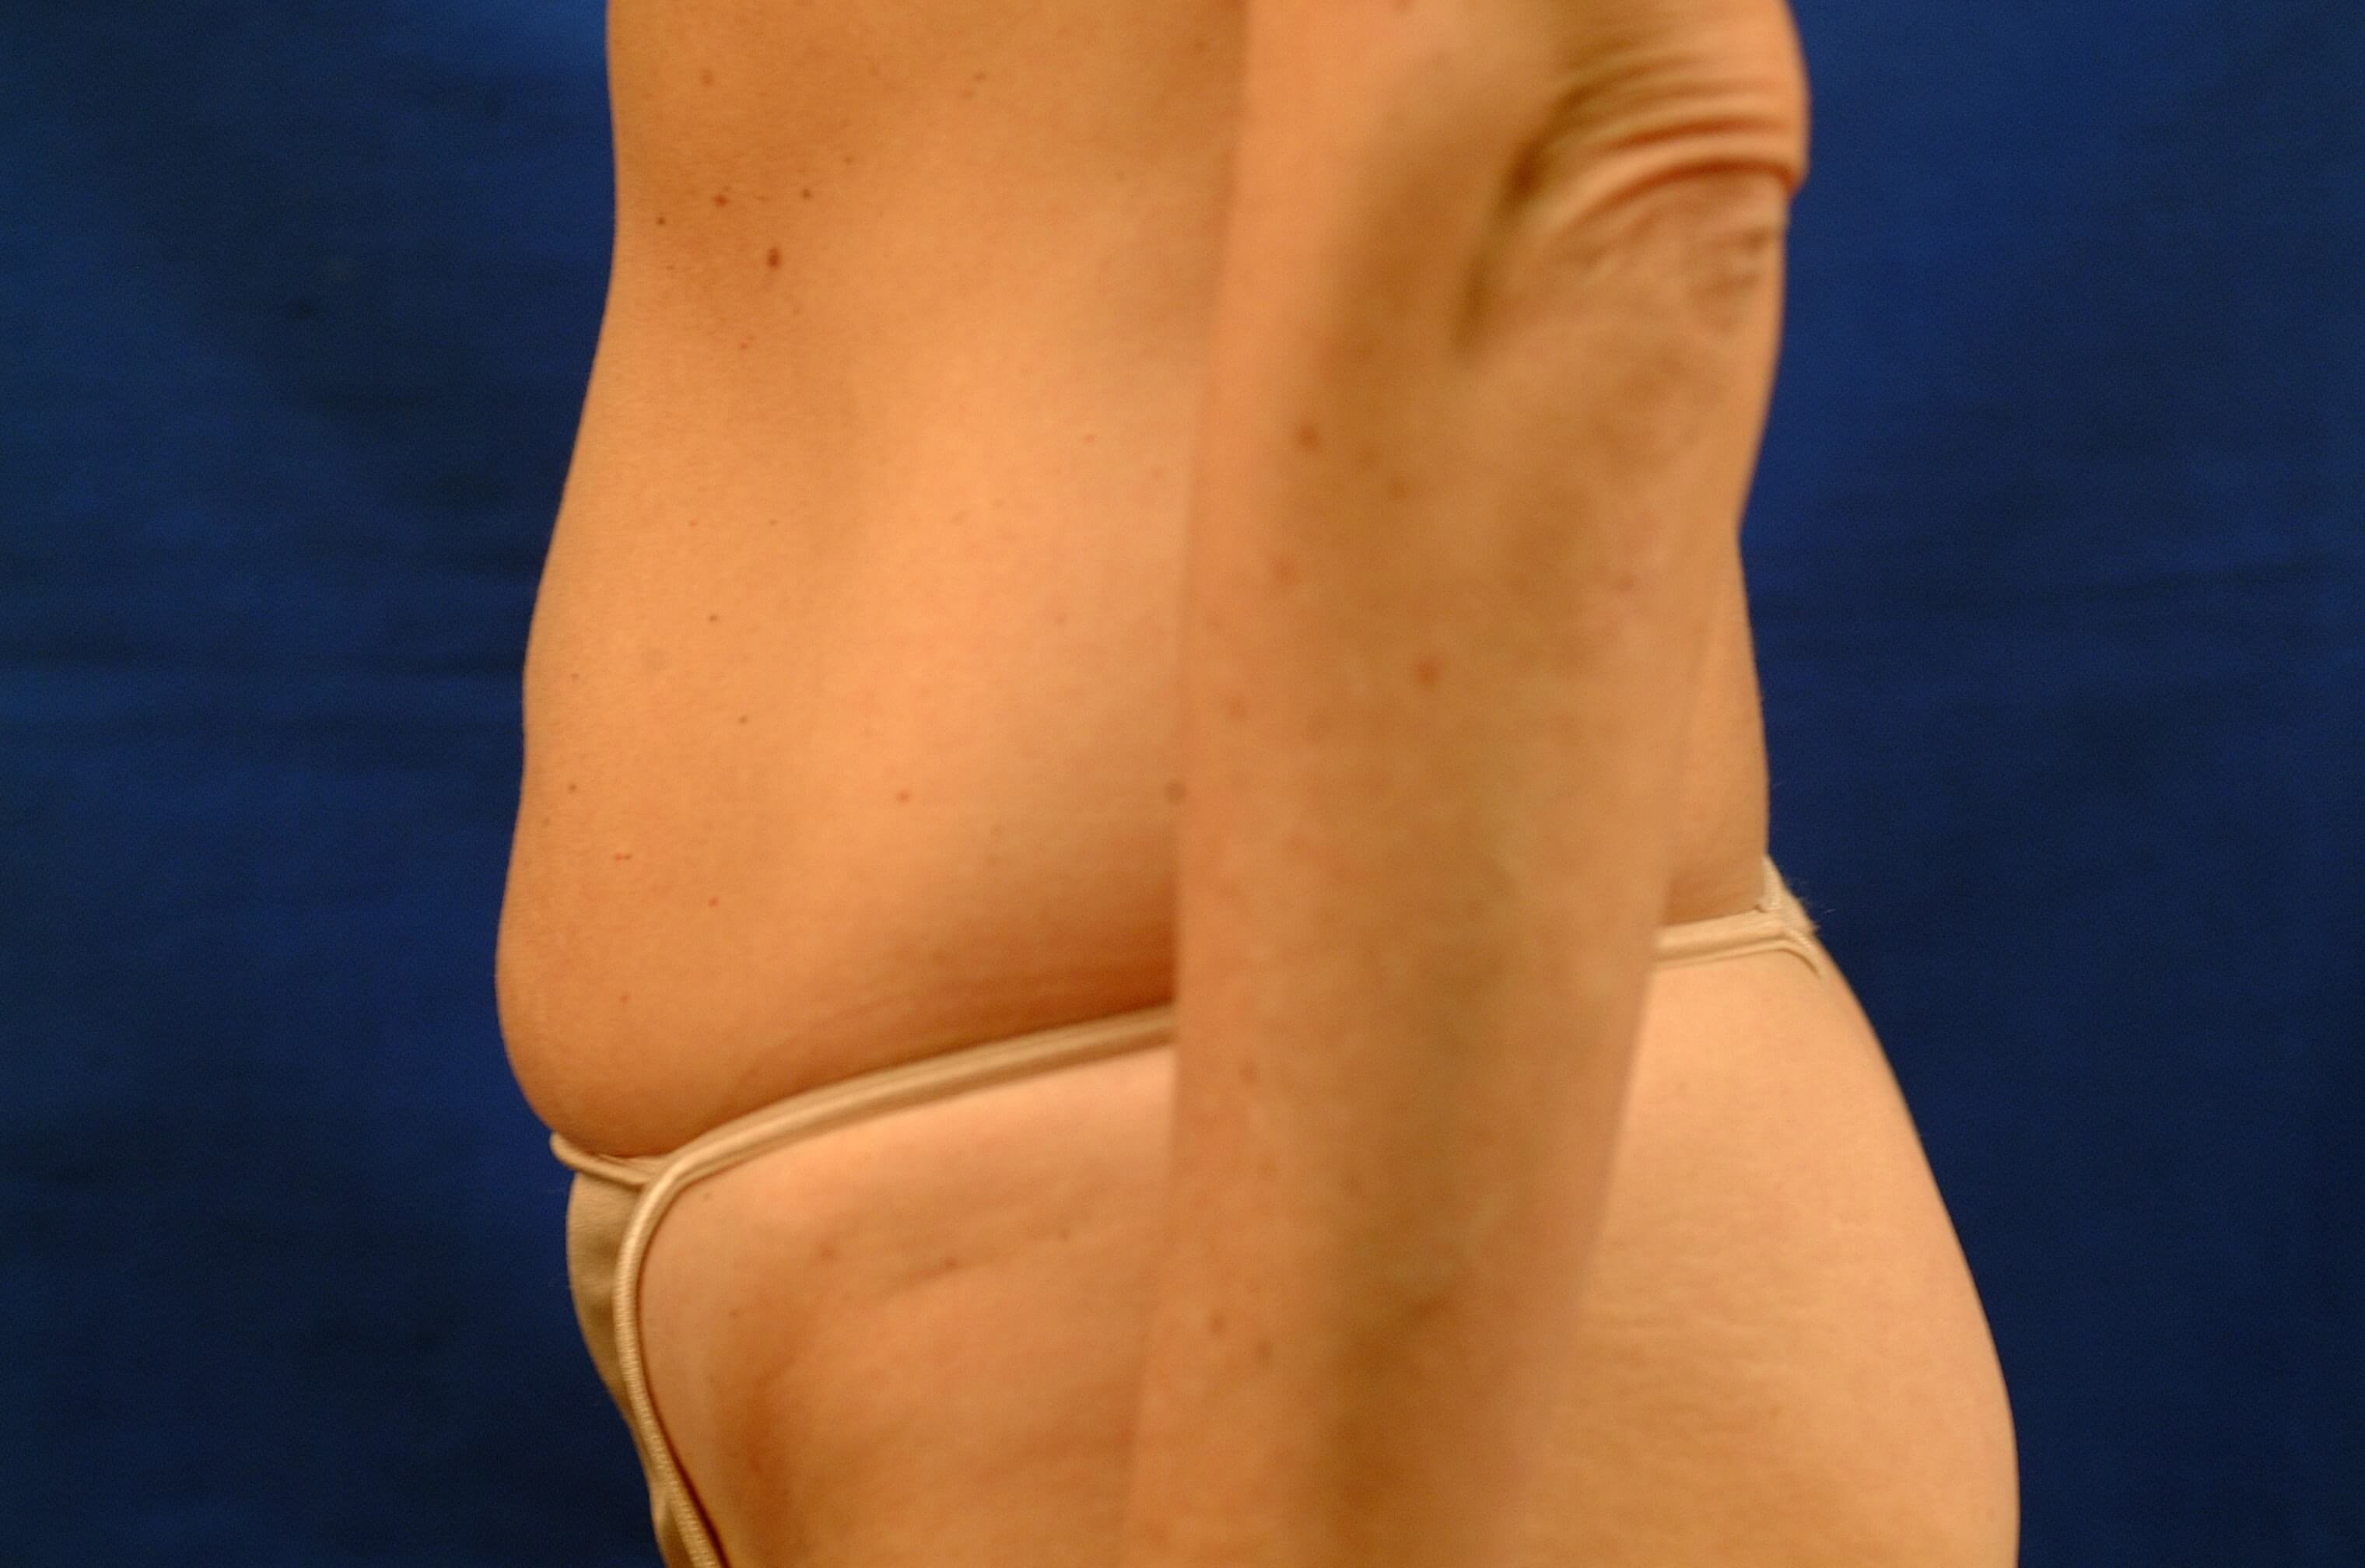 Newport Beach Liposuction Side View Before